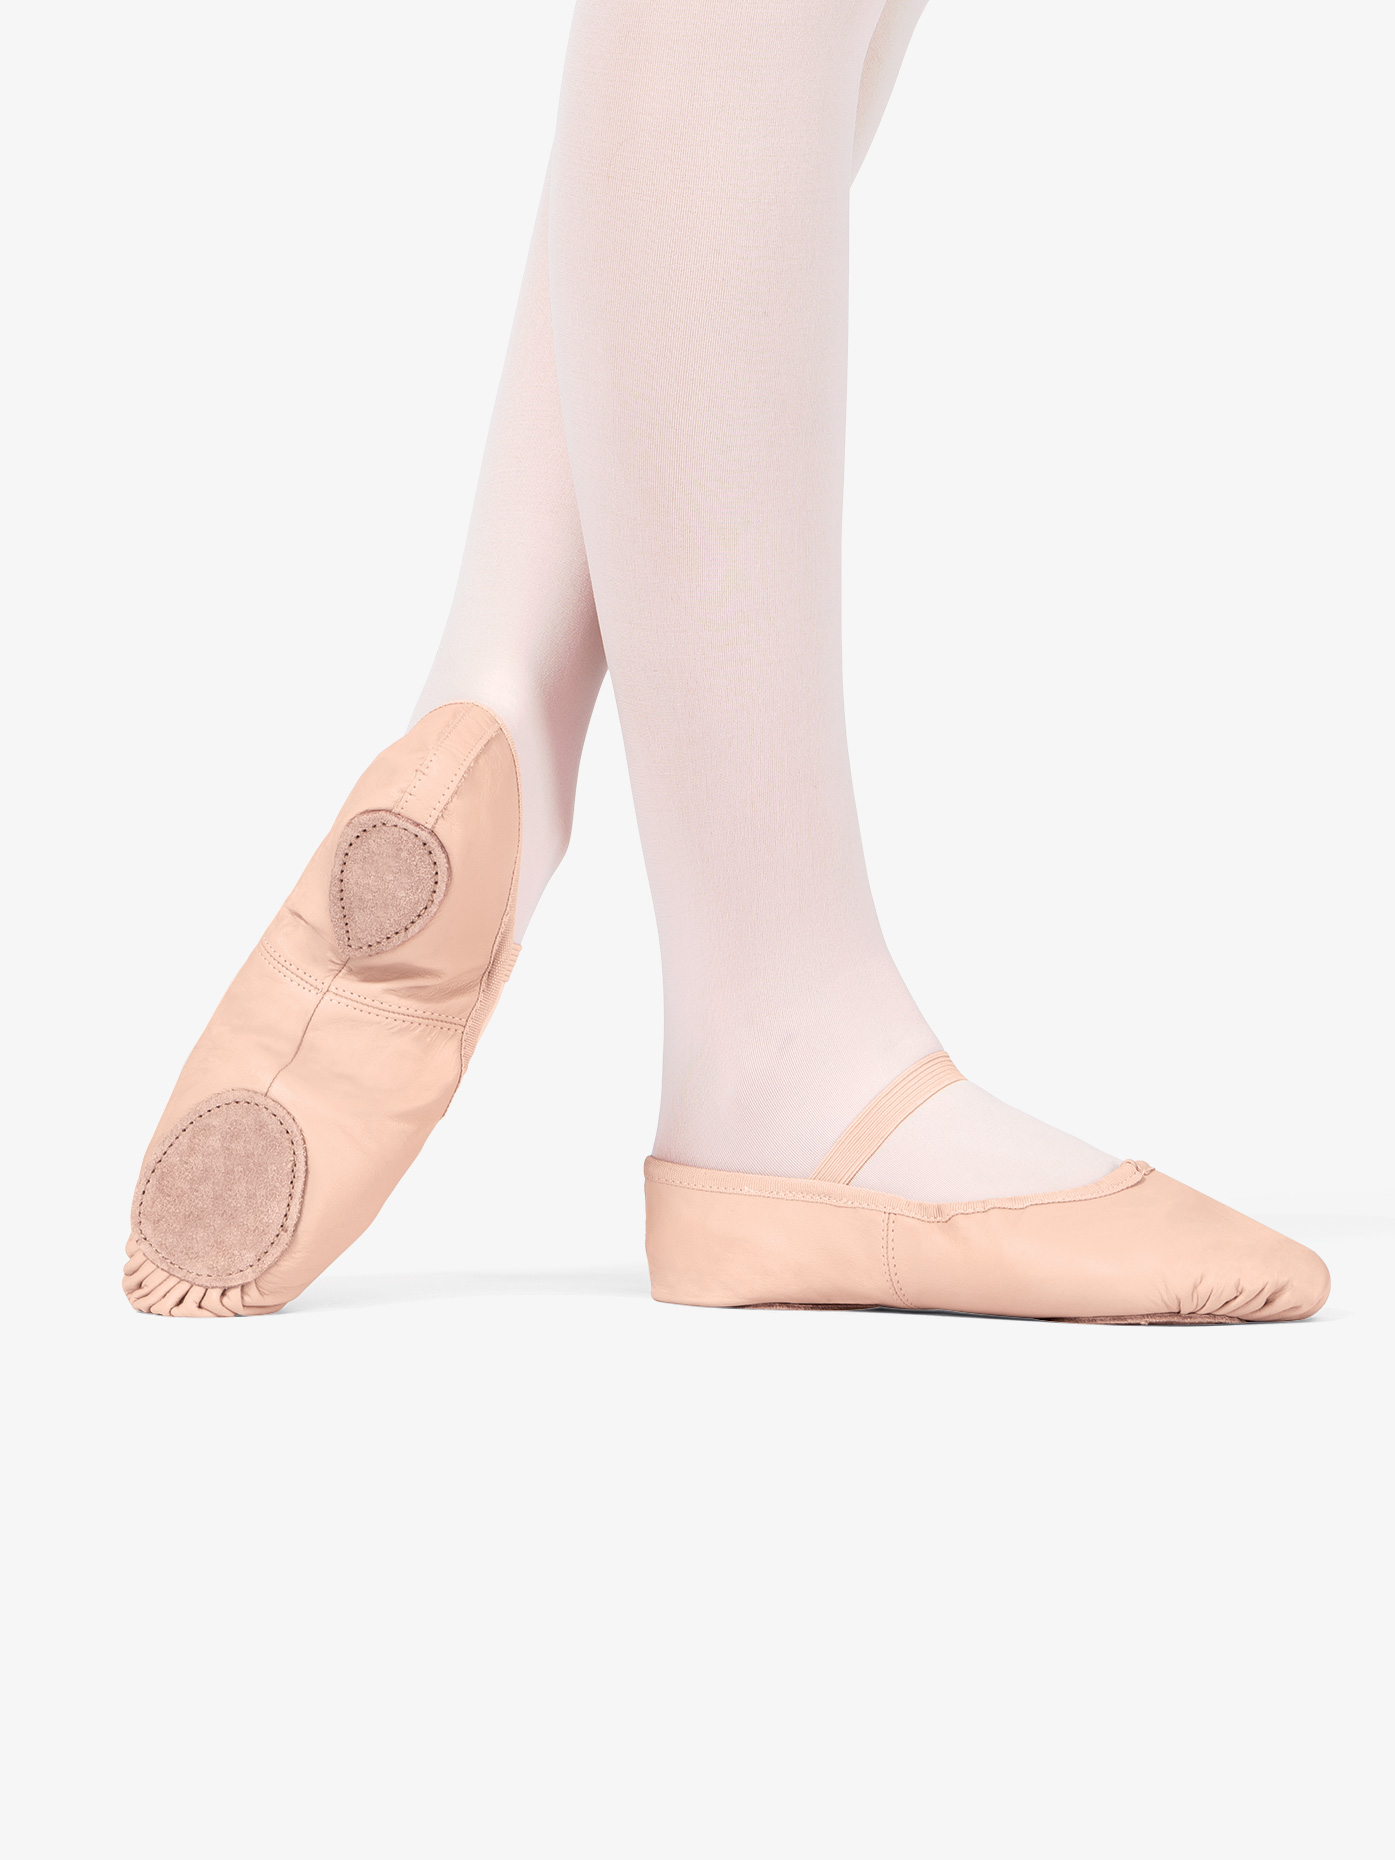 Theatricals Child Leather Split-Sole Ballet Shoes T2700C